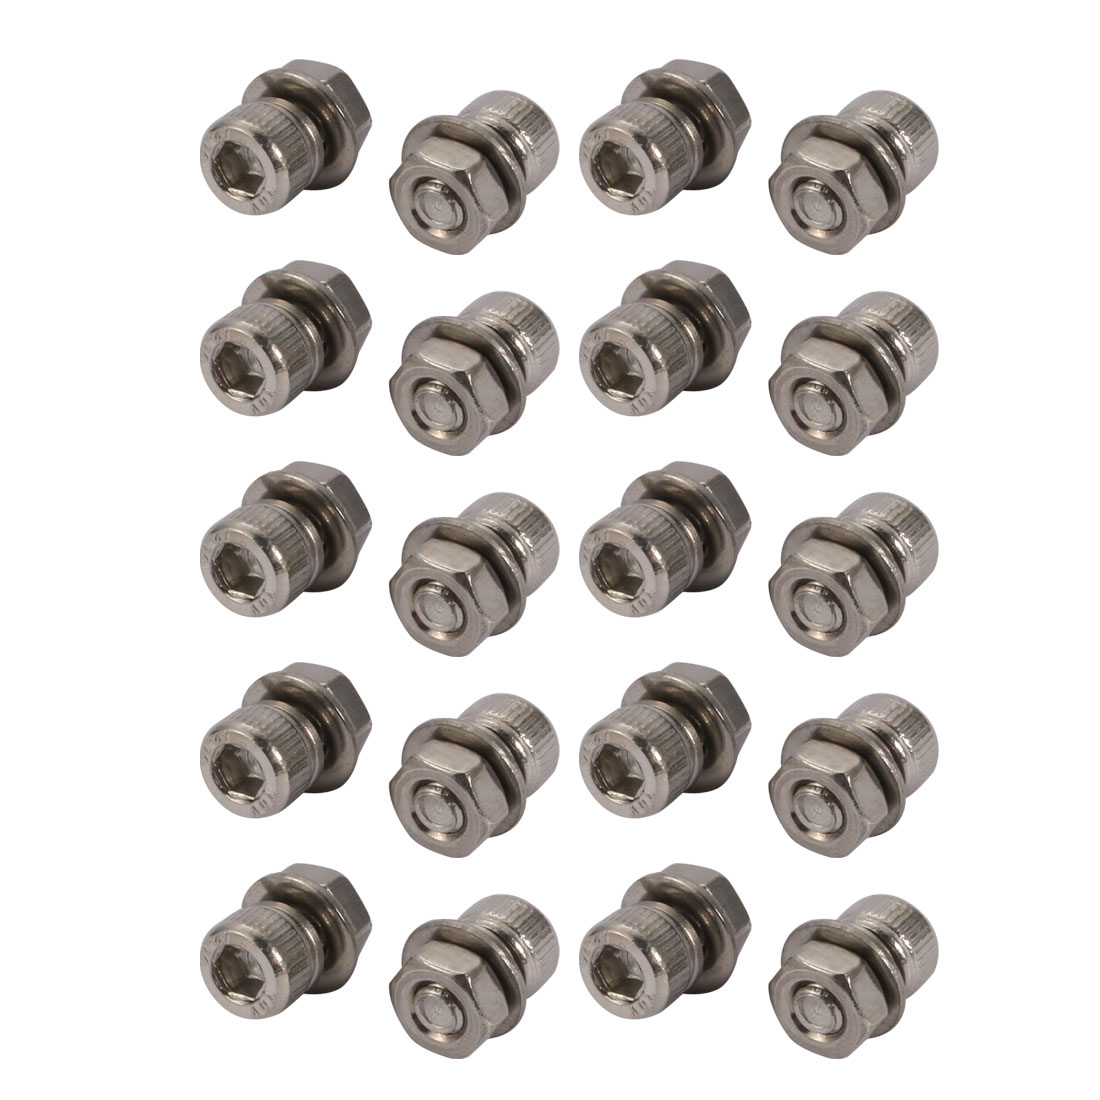 20pcs M4x6mm 304 Stainless Steel Knurled Hex Socket Head Bolts w Nut Washer